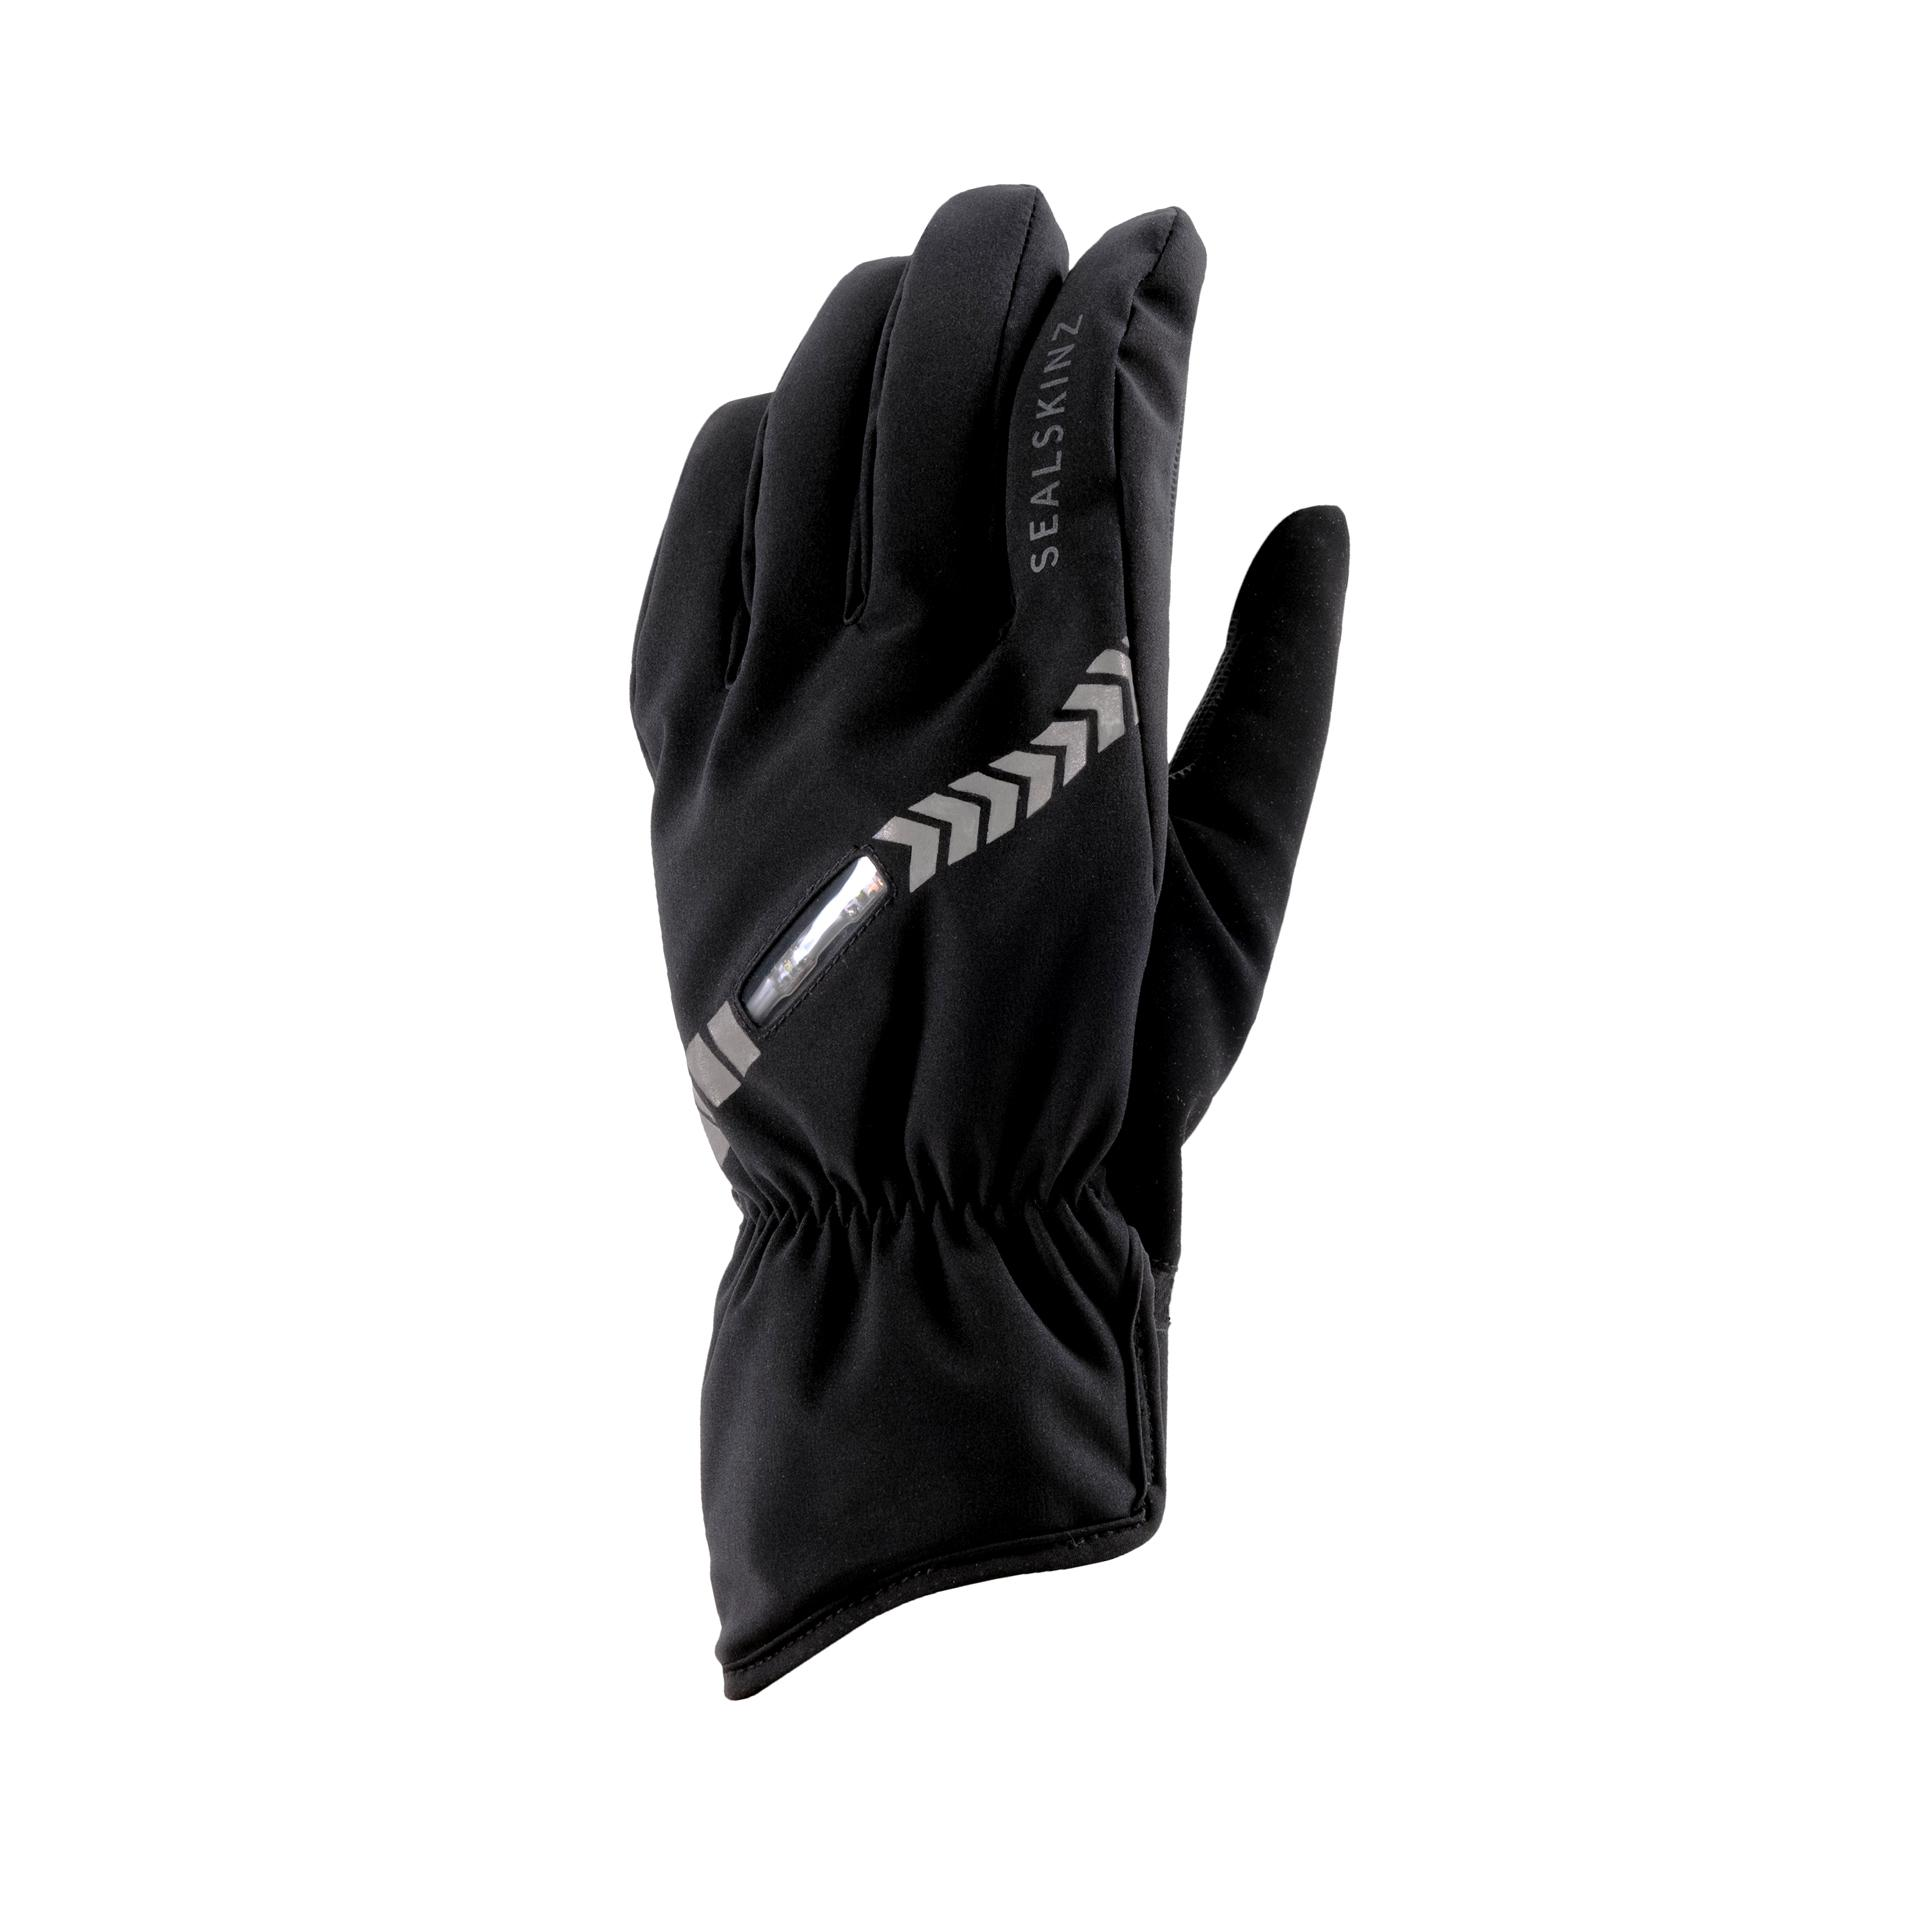 Afbeelding Sealskinz Fietshandschoenen waterdicht voor Heren Zwart  / Waterproof All Weather LED Cycle Glove Black